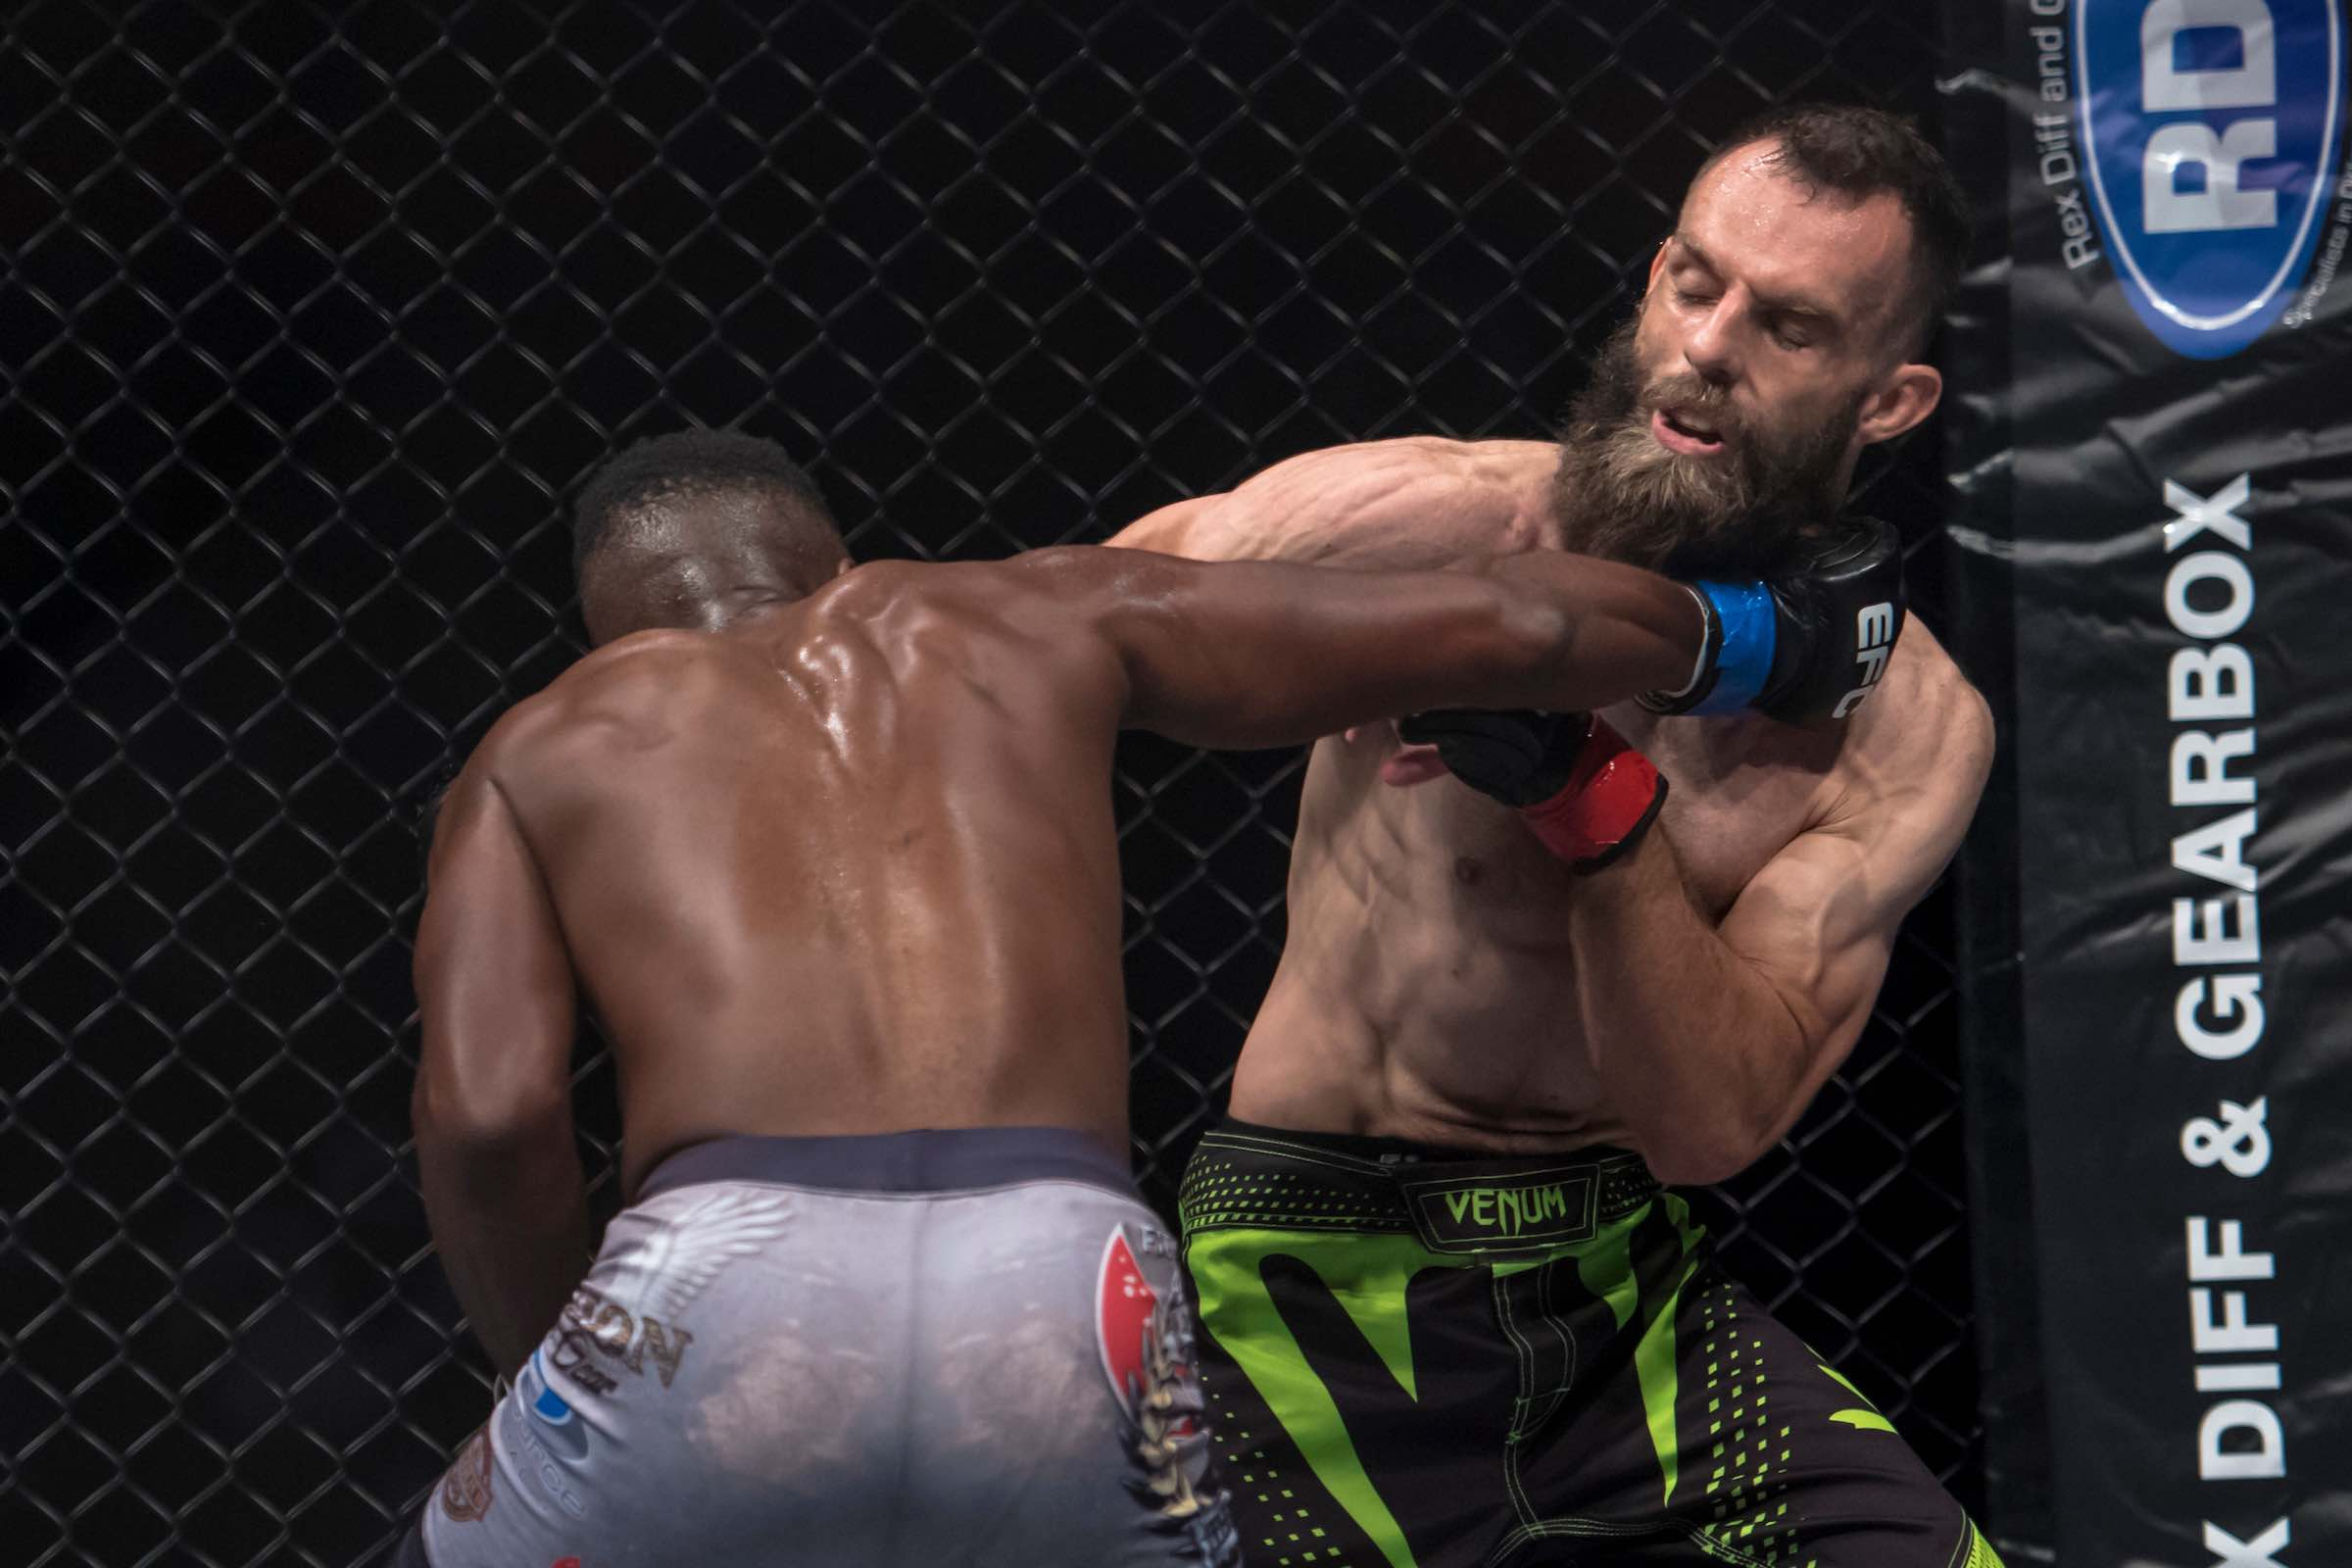 Mixed Martial Arts action at its best at EFC 67 from Carnival City